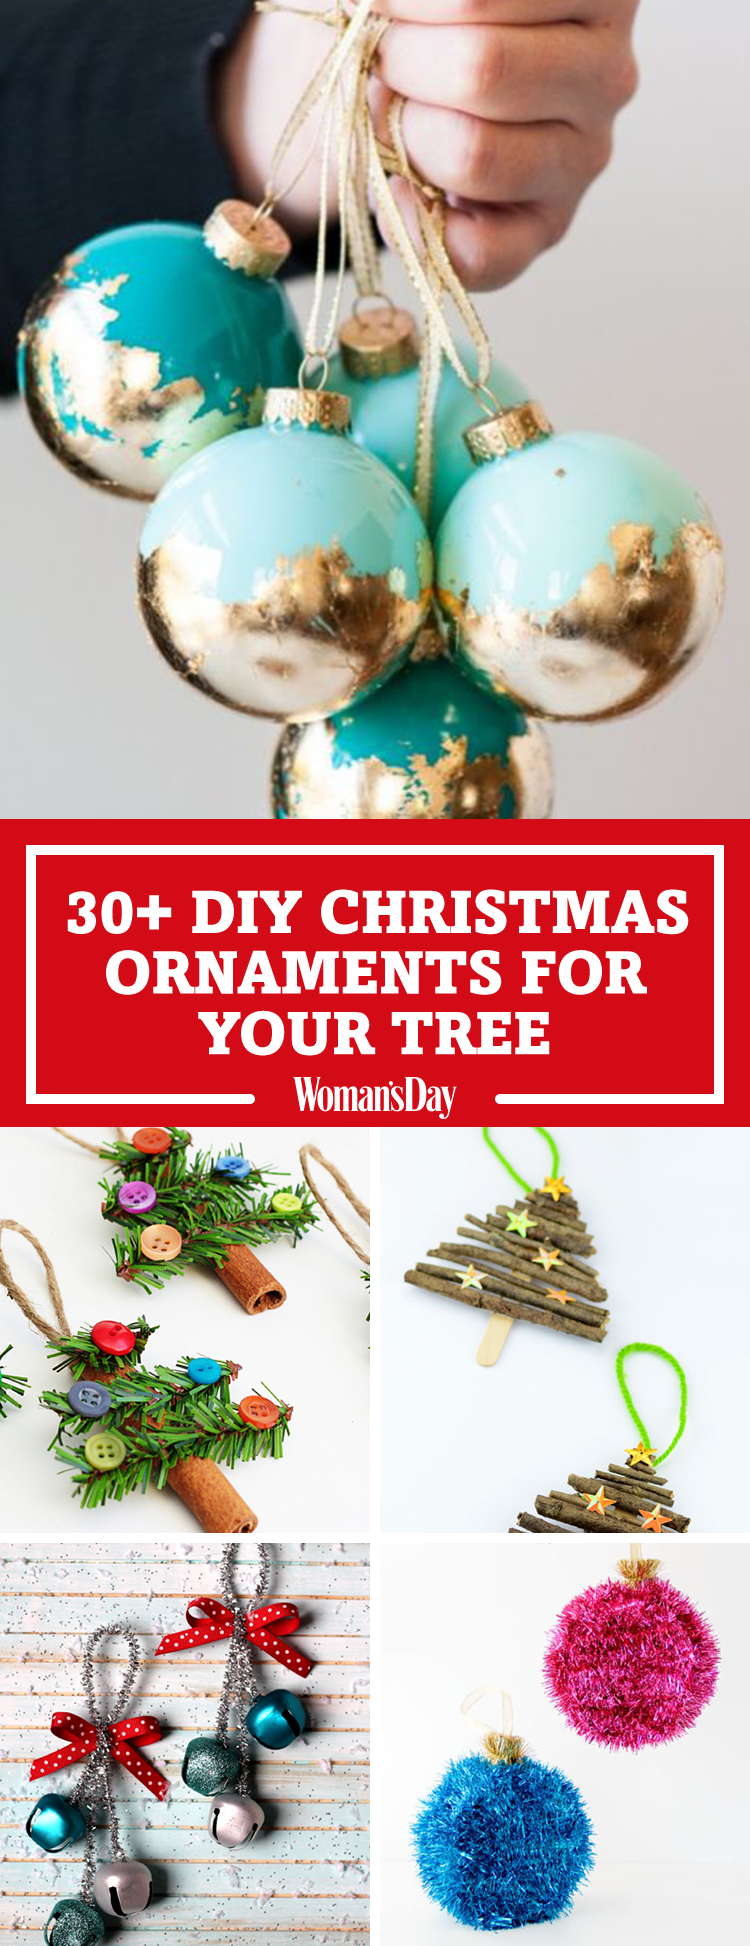 31 homemade diy christmas ornament craft ideas how to make holiday ornaments